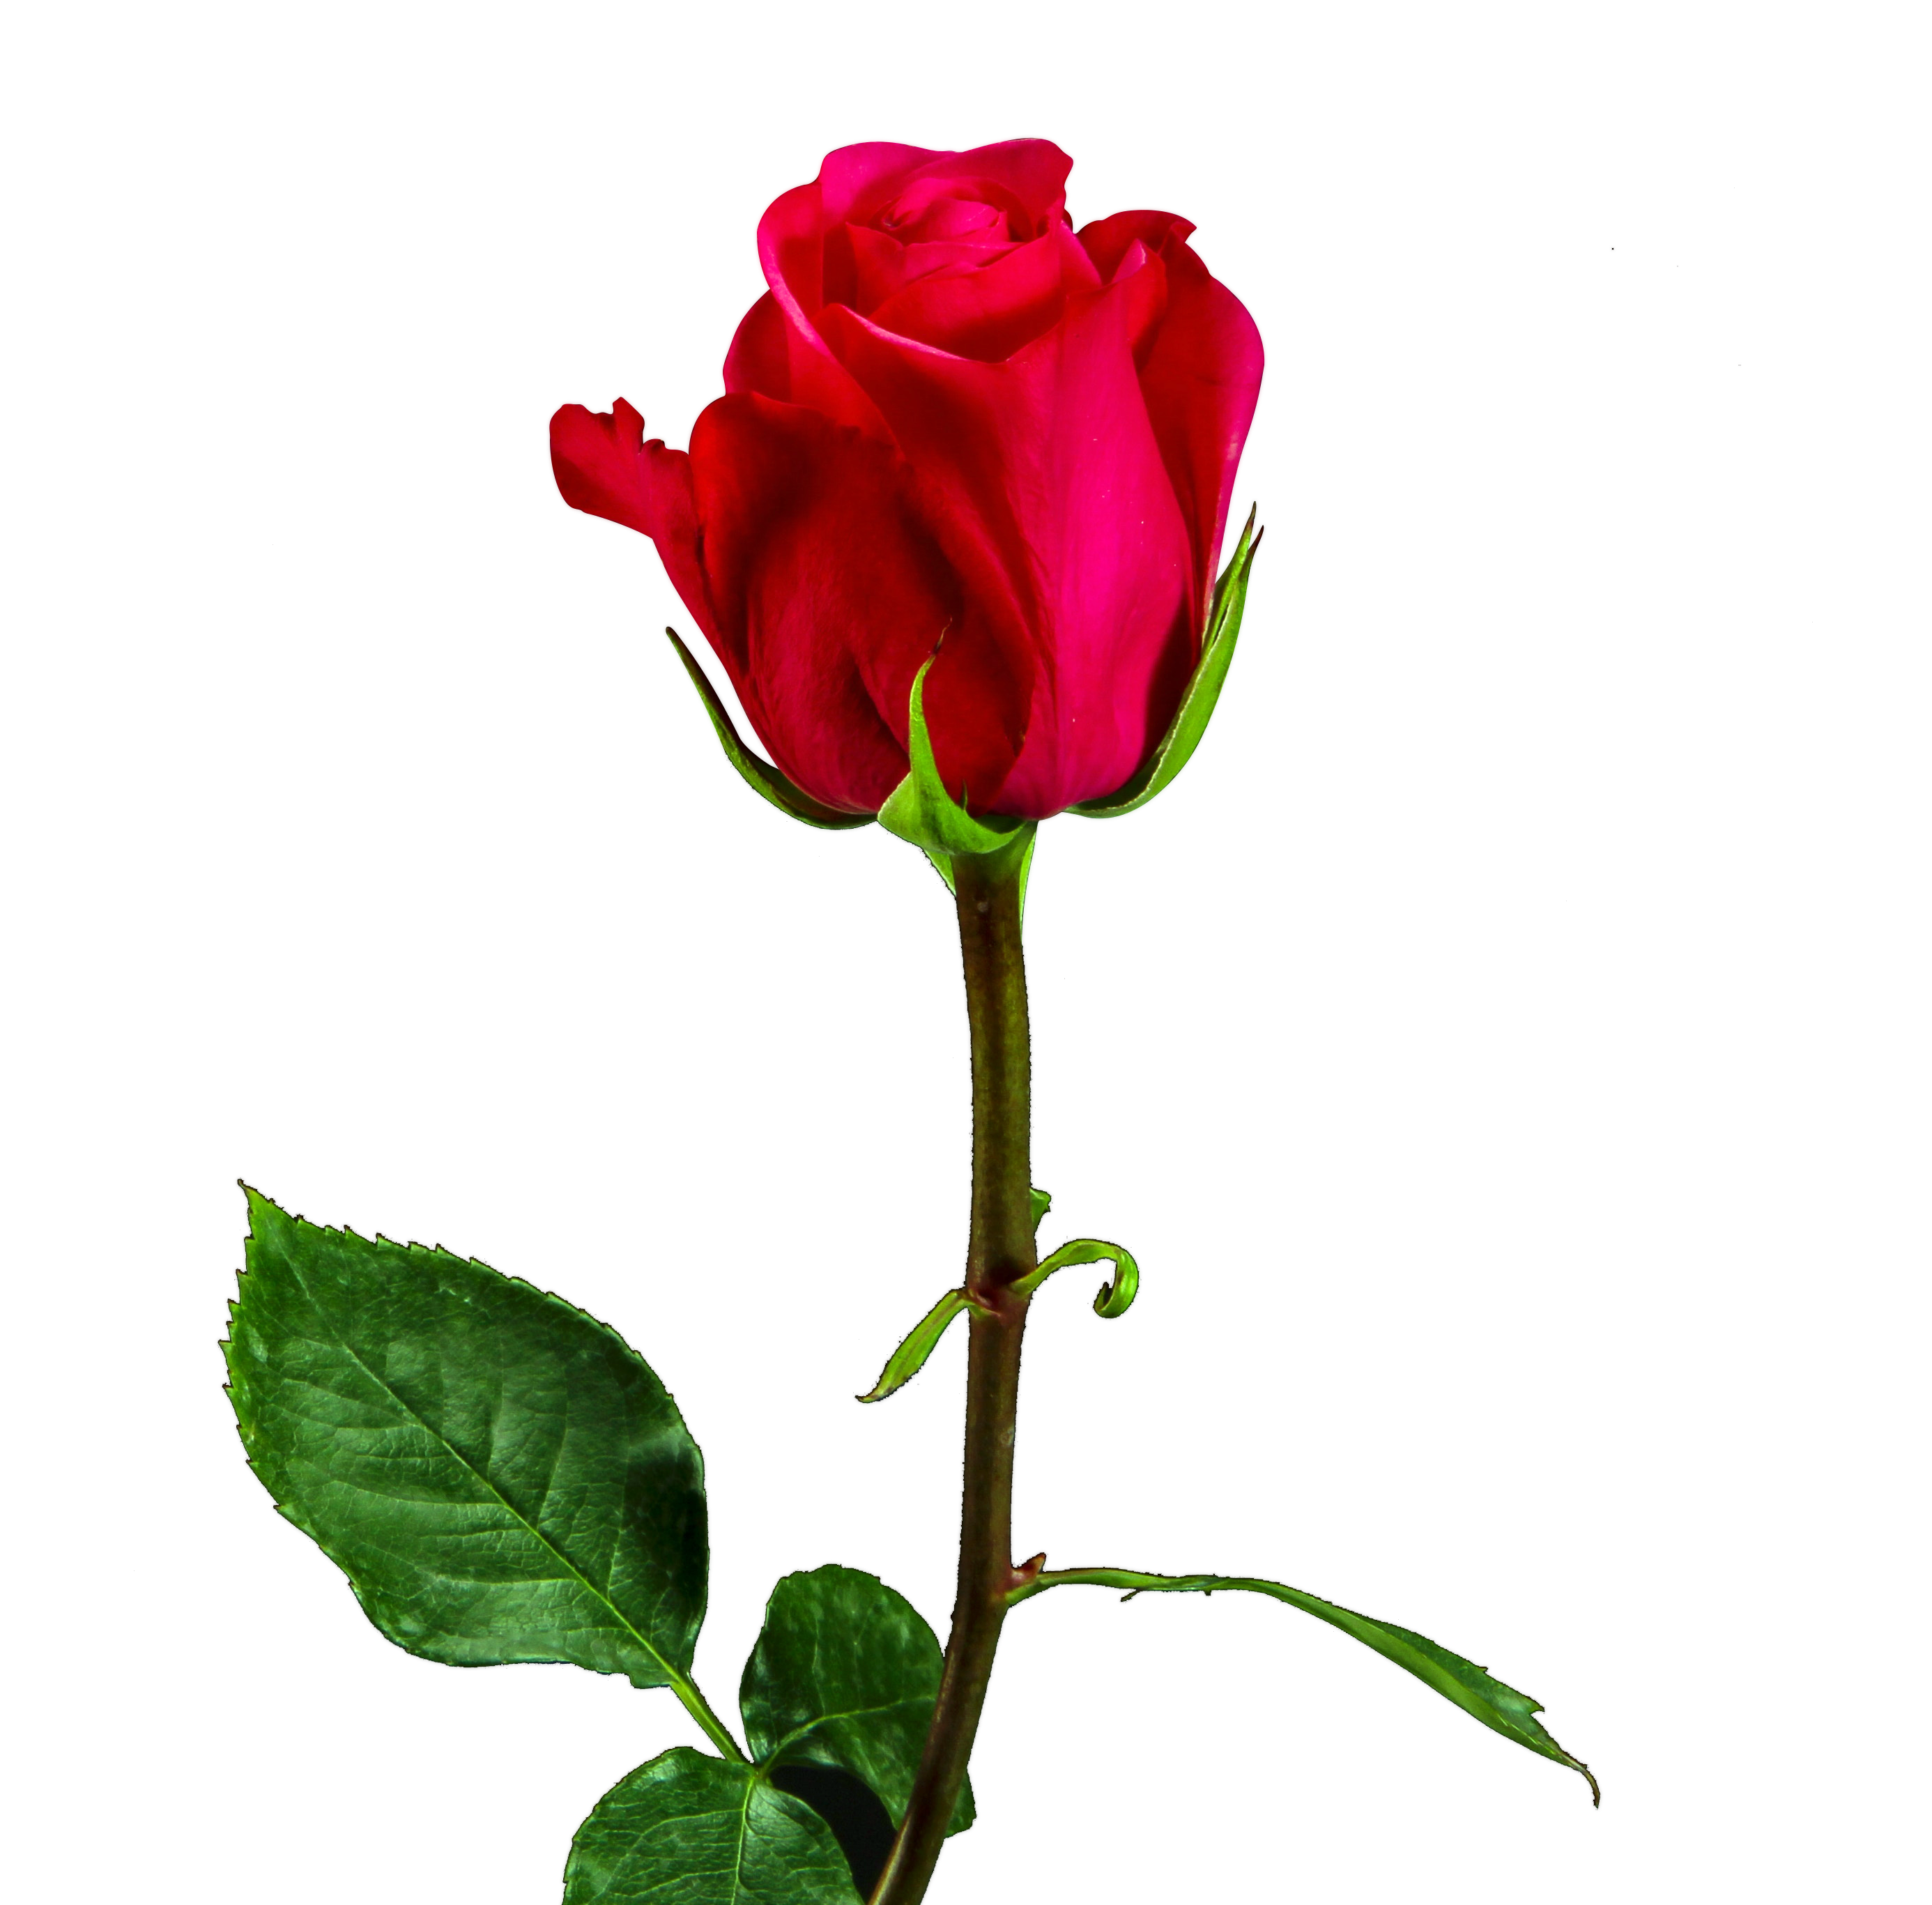 Valentine rose png. Day red image free